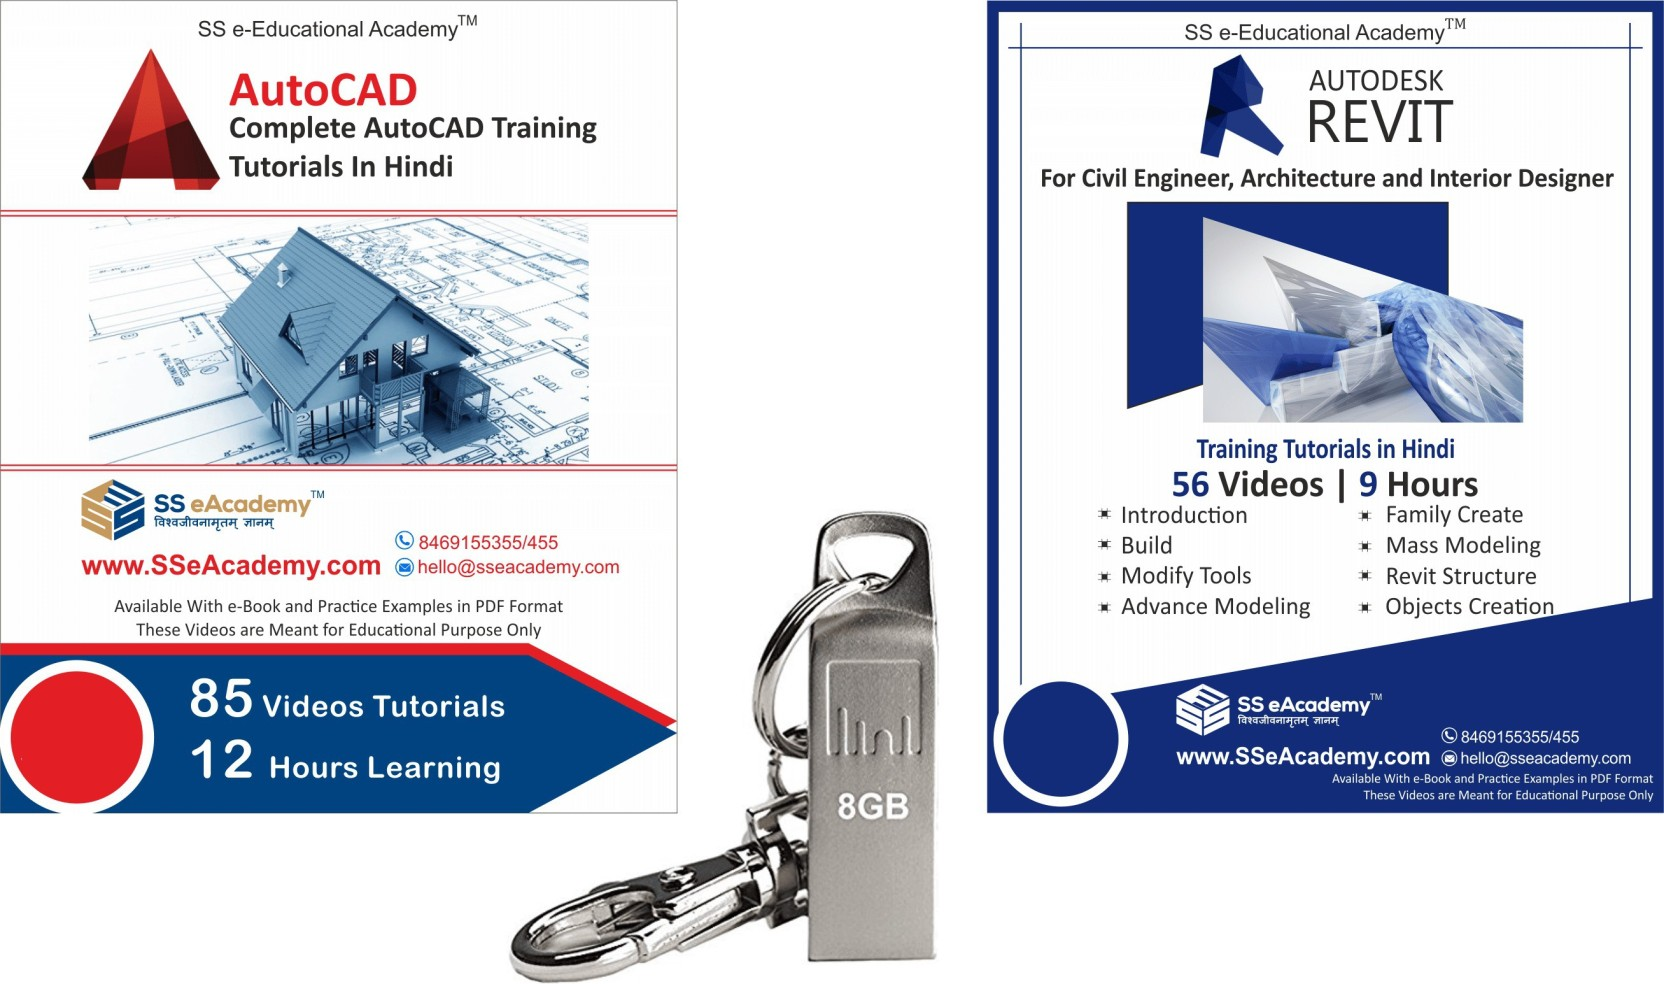 SS eAcademy Professional AutoCAD and Revit Tutorials in